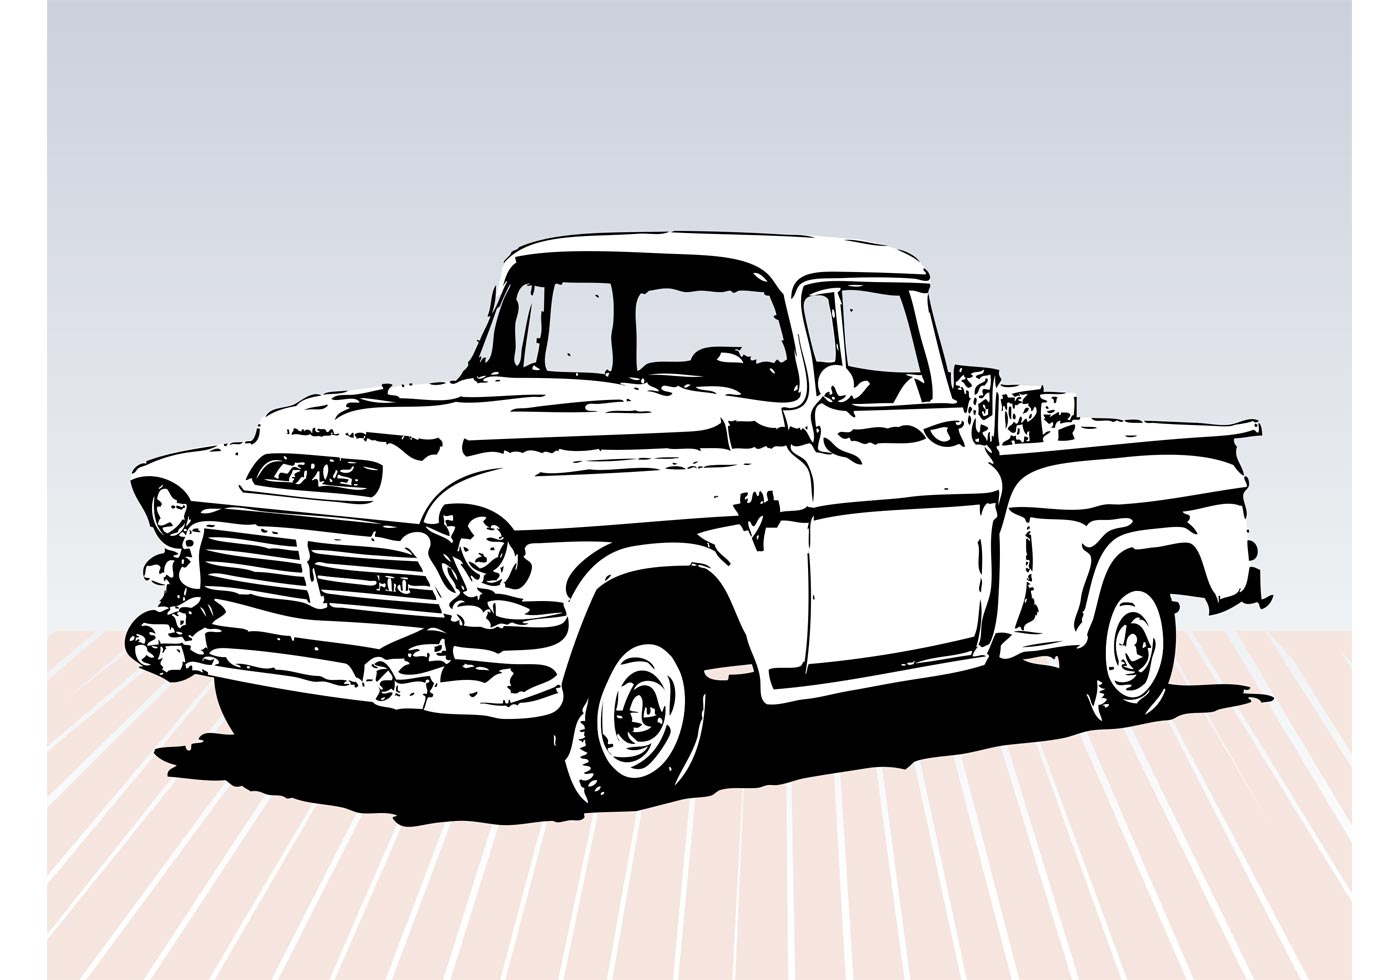 Old truck clipart 20 free Cliparts | Download images on ...